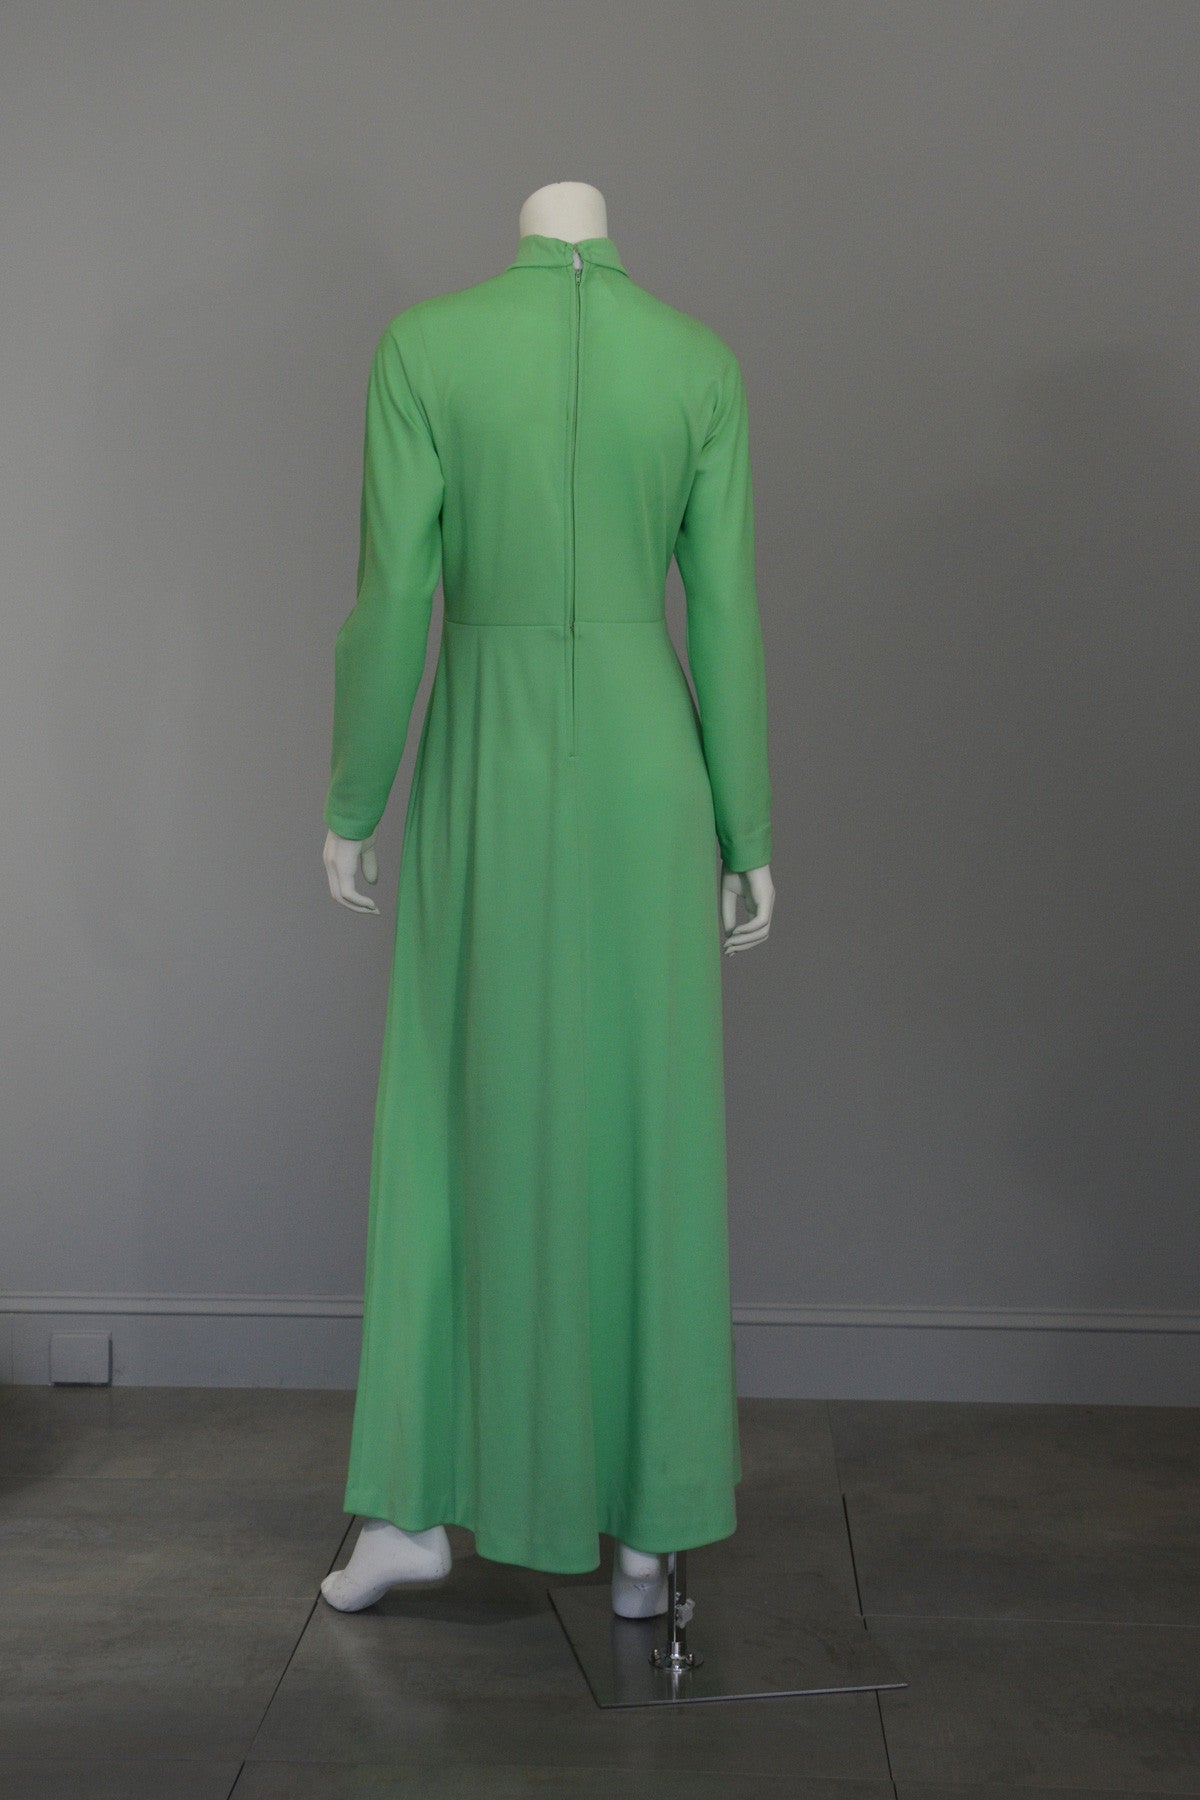 1970s Mint Green 'Katy Perry' Cutout Knit Maxi Dress Disco Era Keyhole Bodice, Size L